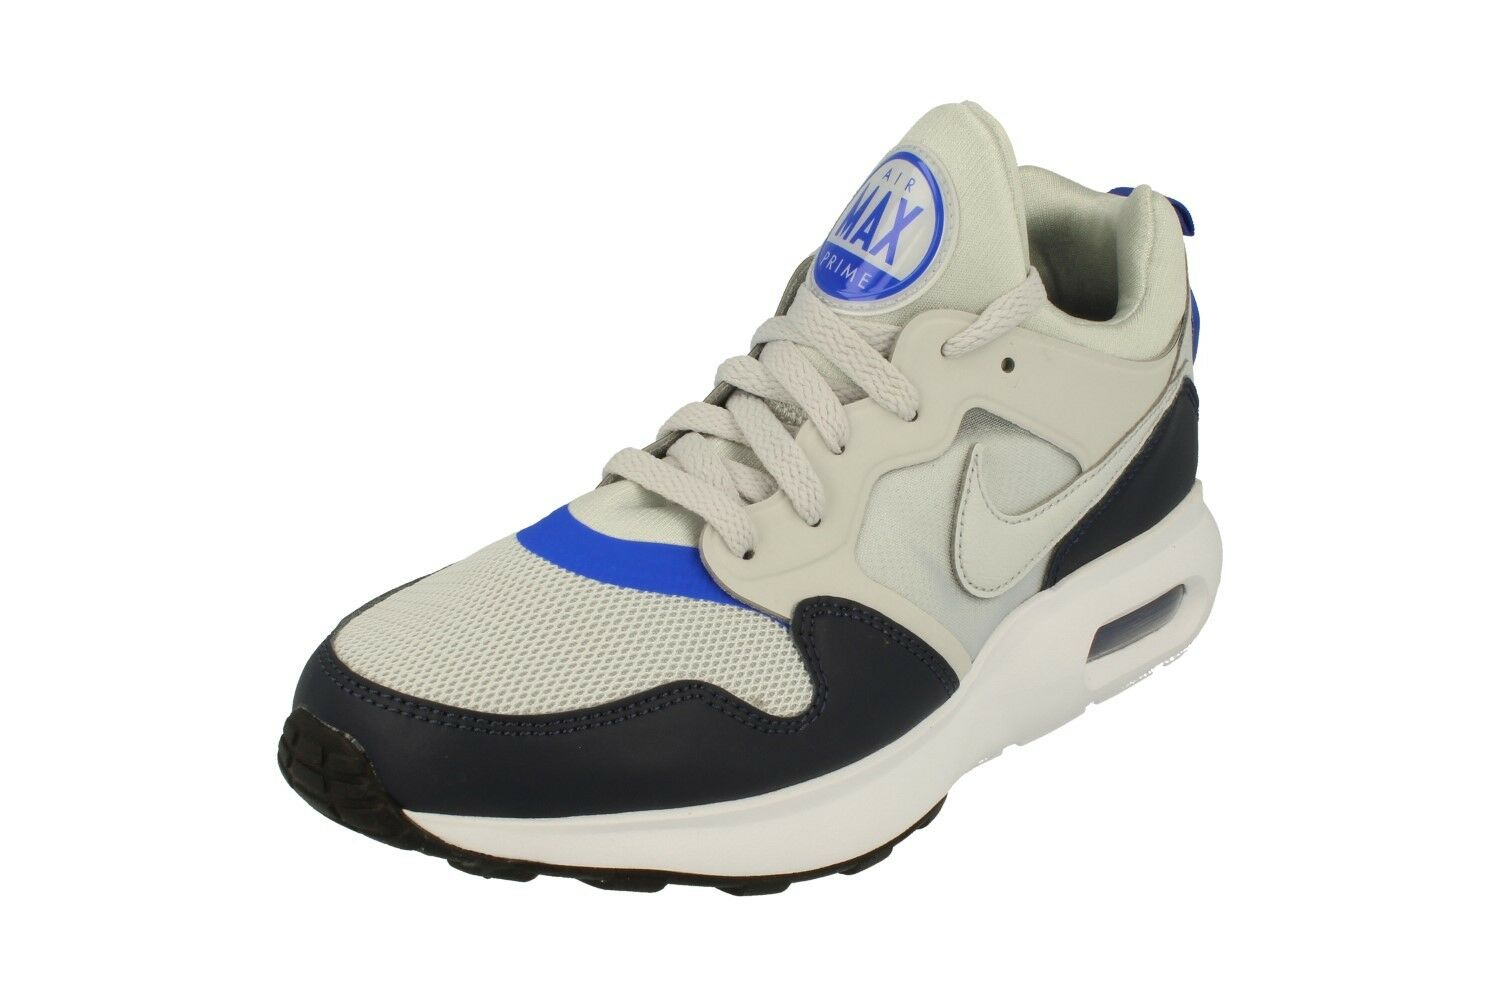 Nike Air Max Prime Mens Running Trainers 876068 Sneakers Shoes 004